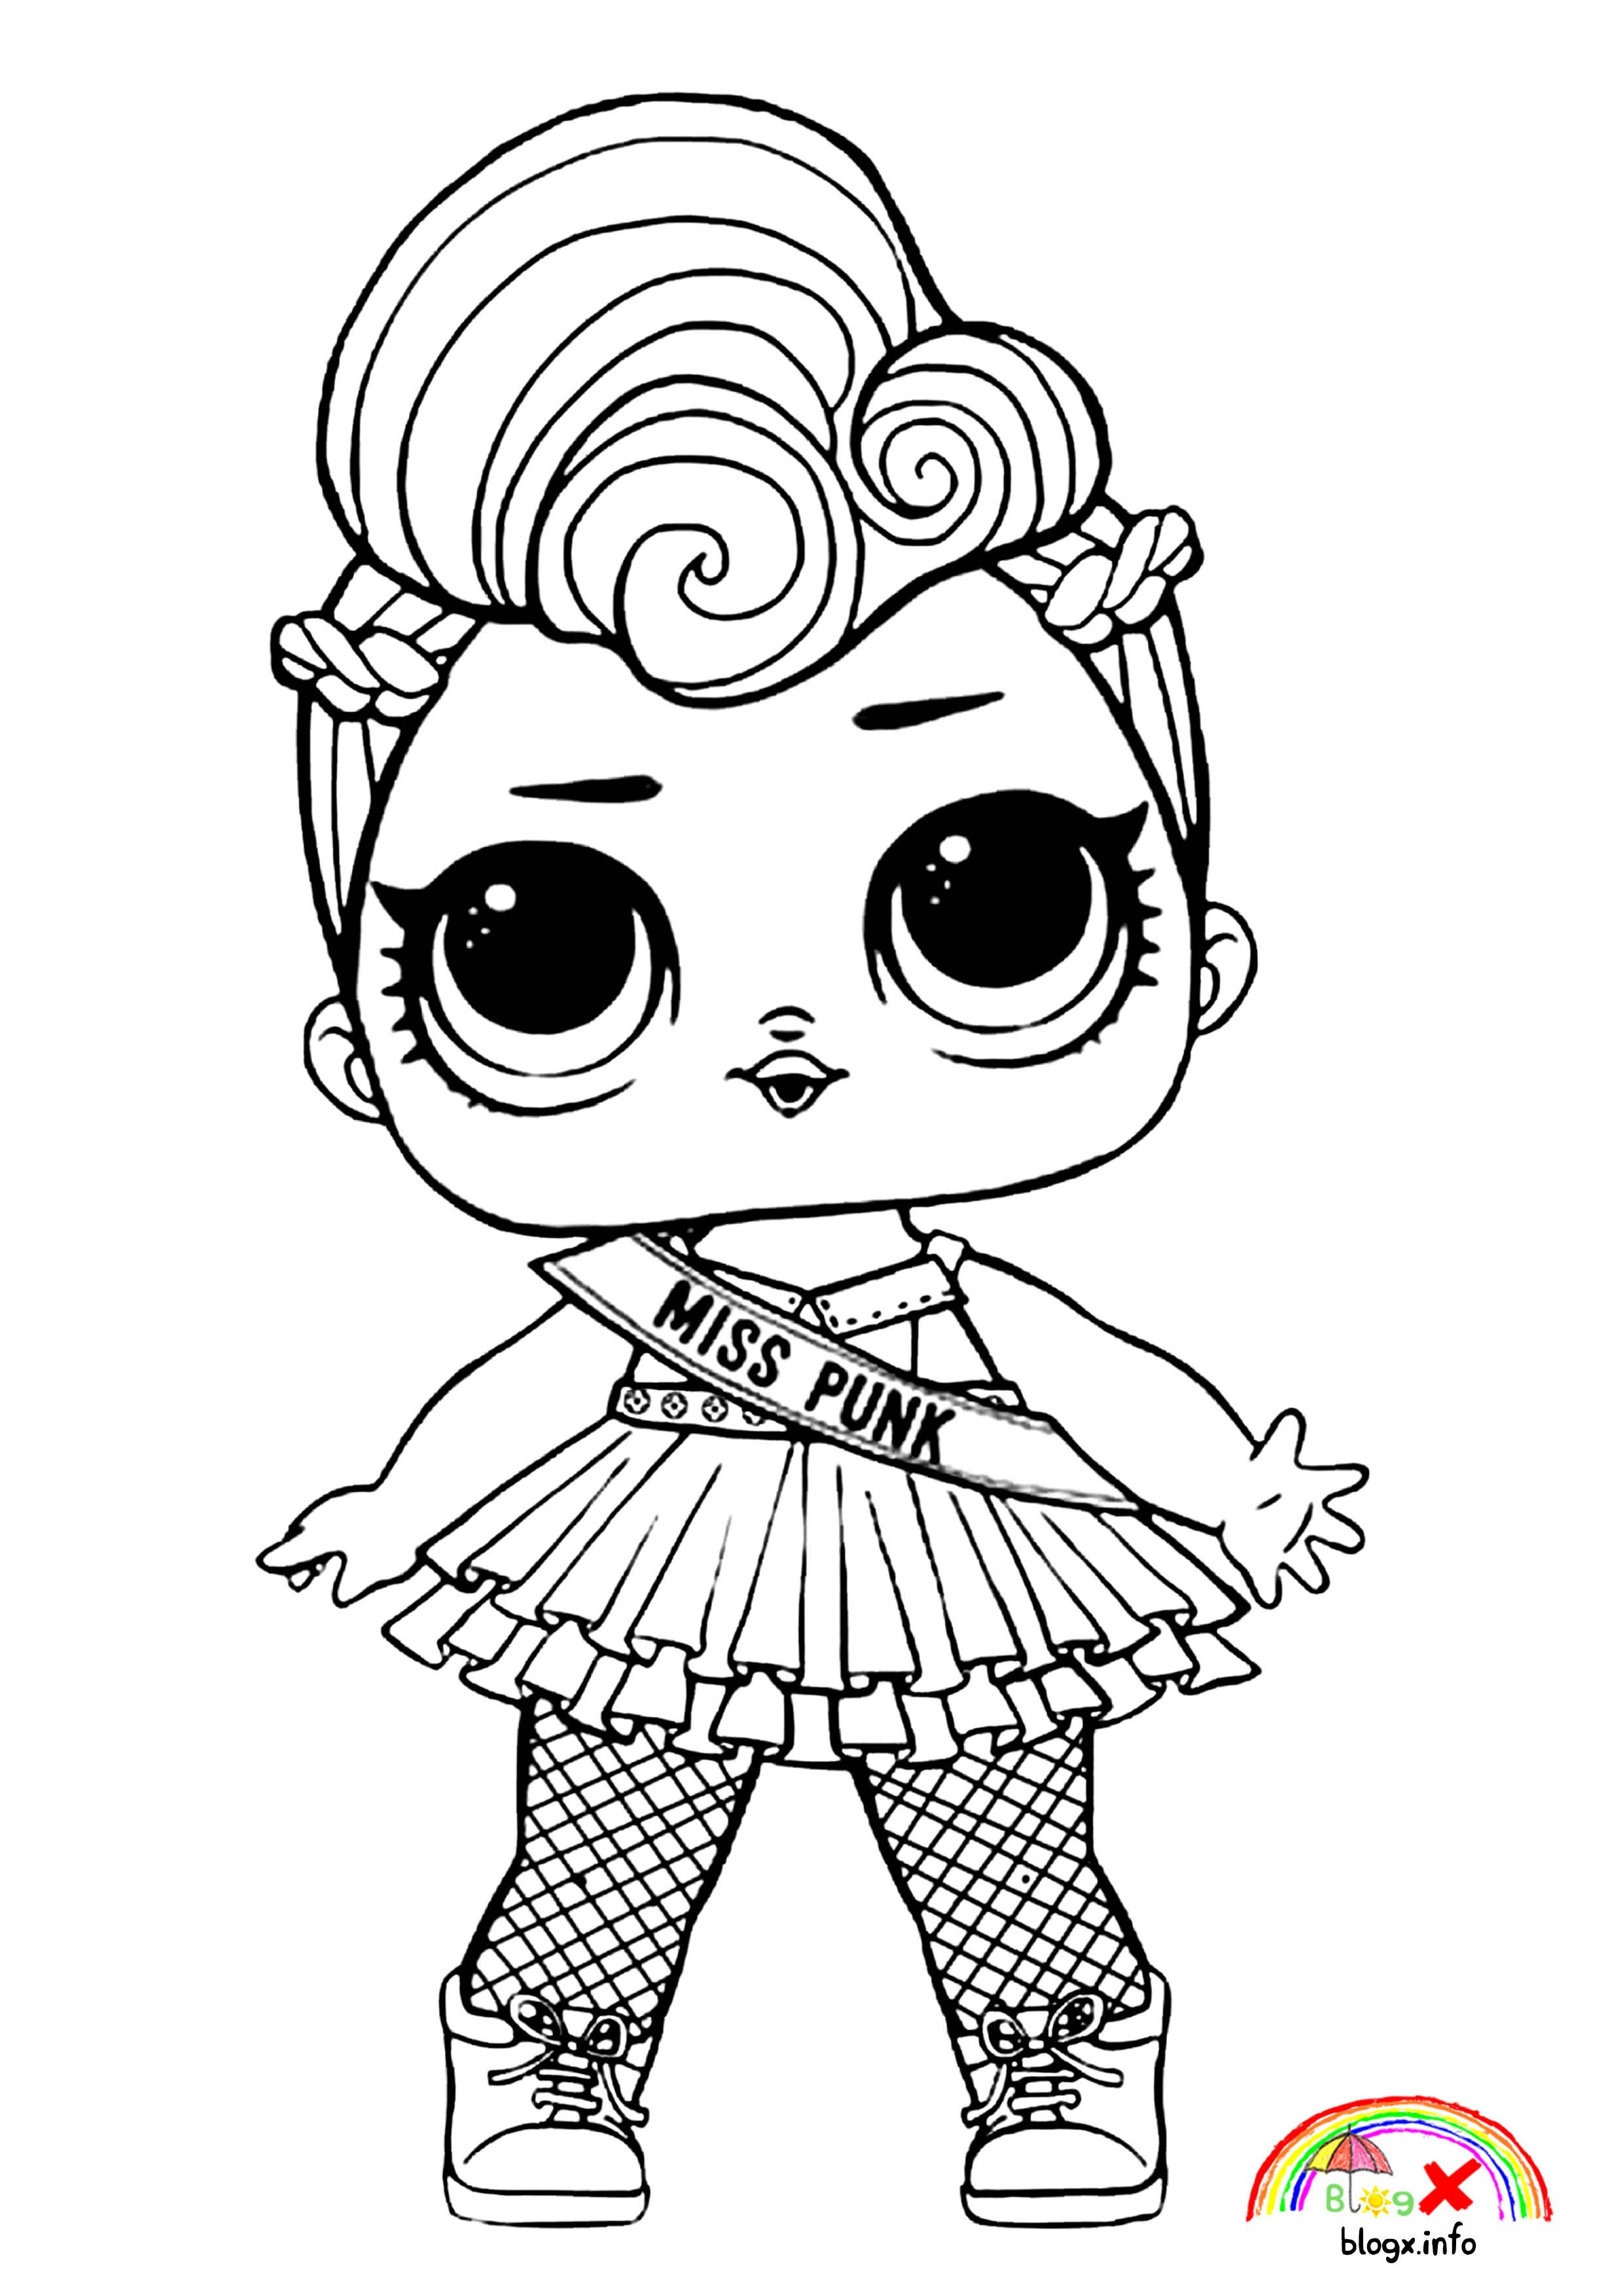 Miss Punk Lol Dolls Coloring Page